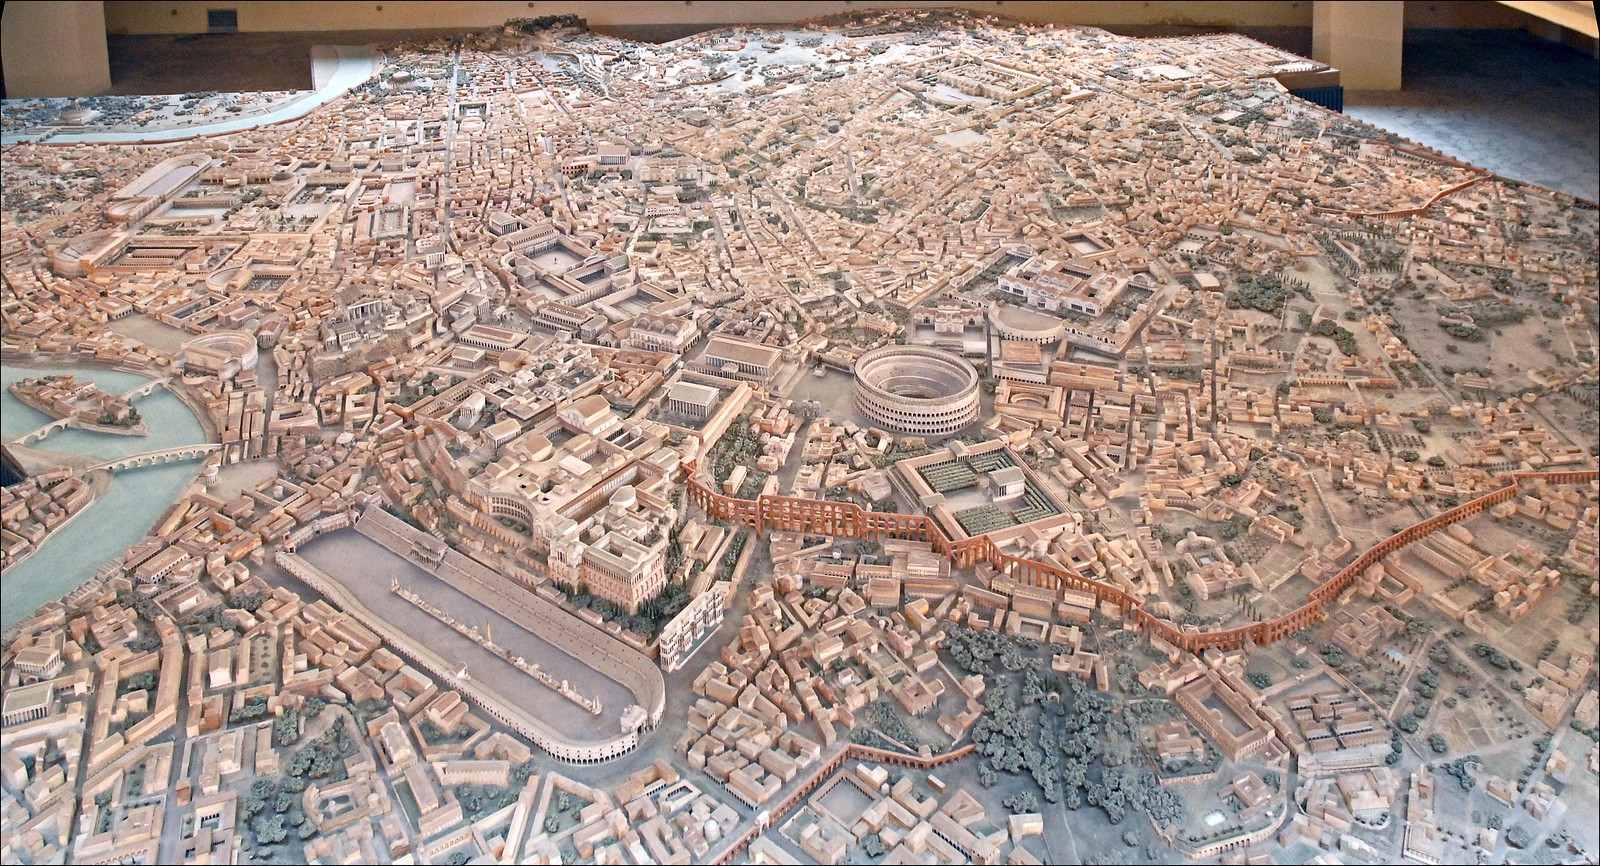 Incredible Scale Model of Ancient Rome Located in EUR by Italo Gismondi